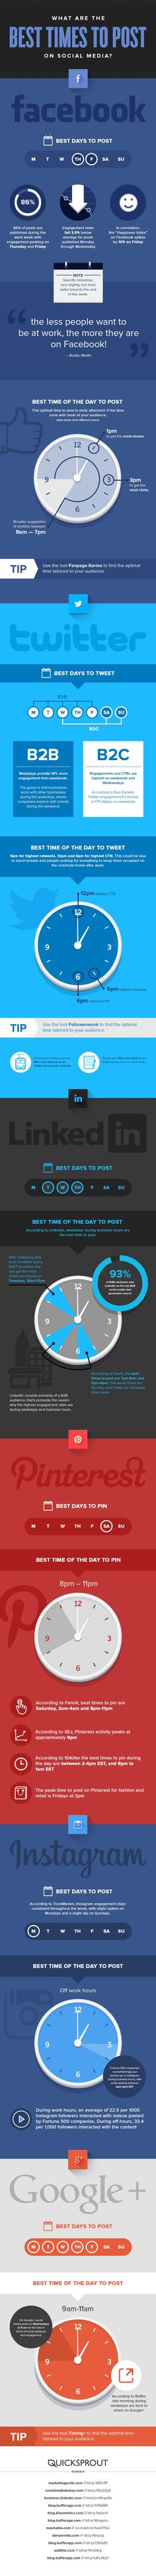 Best Times to Post on Social Media - Almost Practical LLC